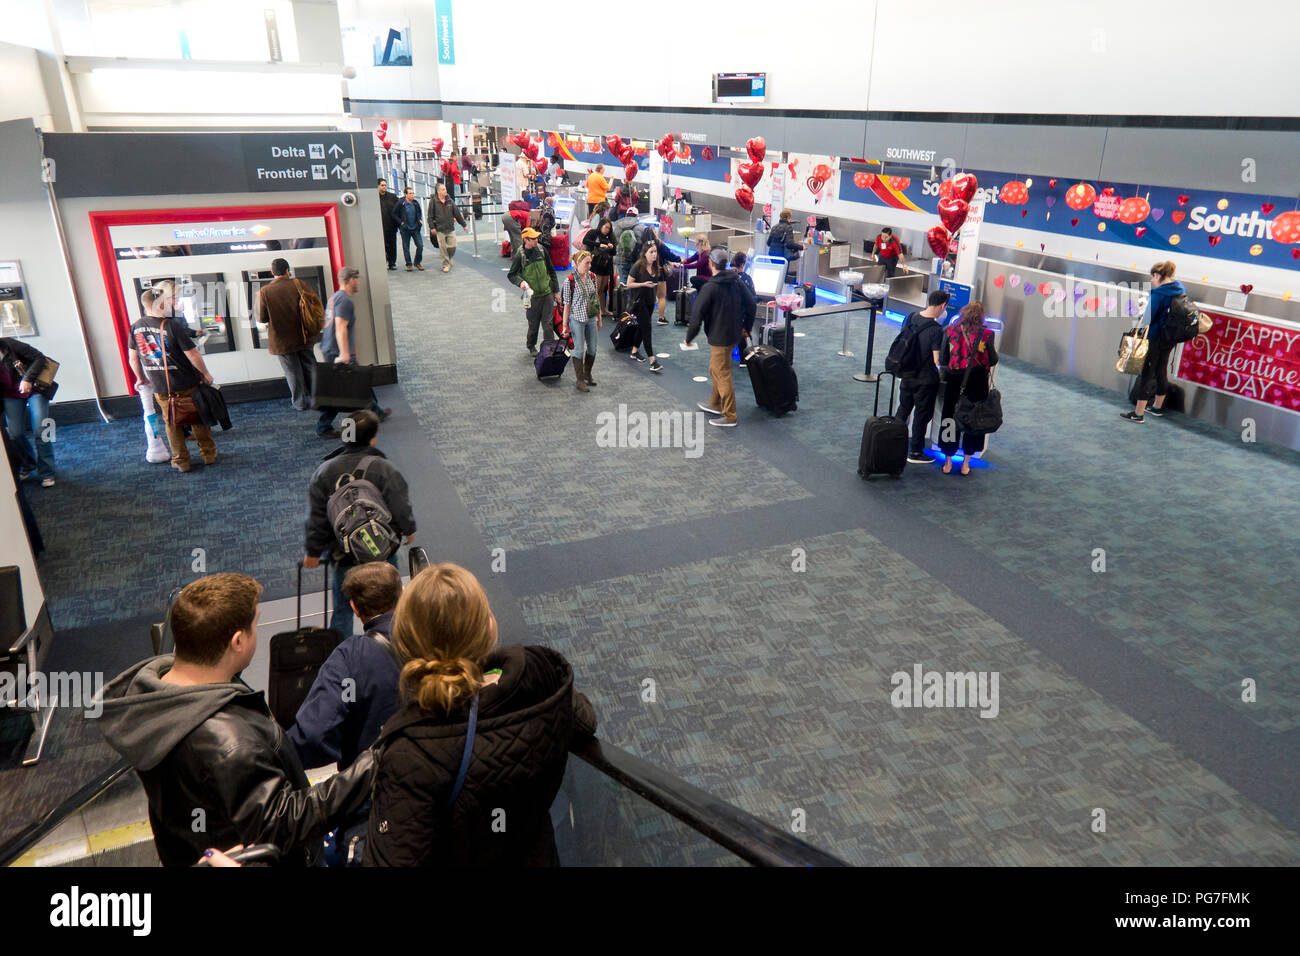 Southwest Airlines check in counters at San Francisco International Airport - San Francisco, California USA - Stock Image